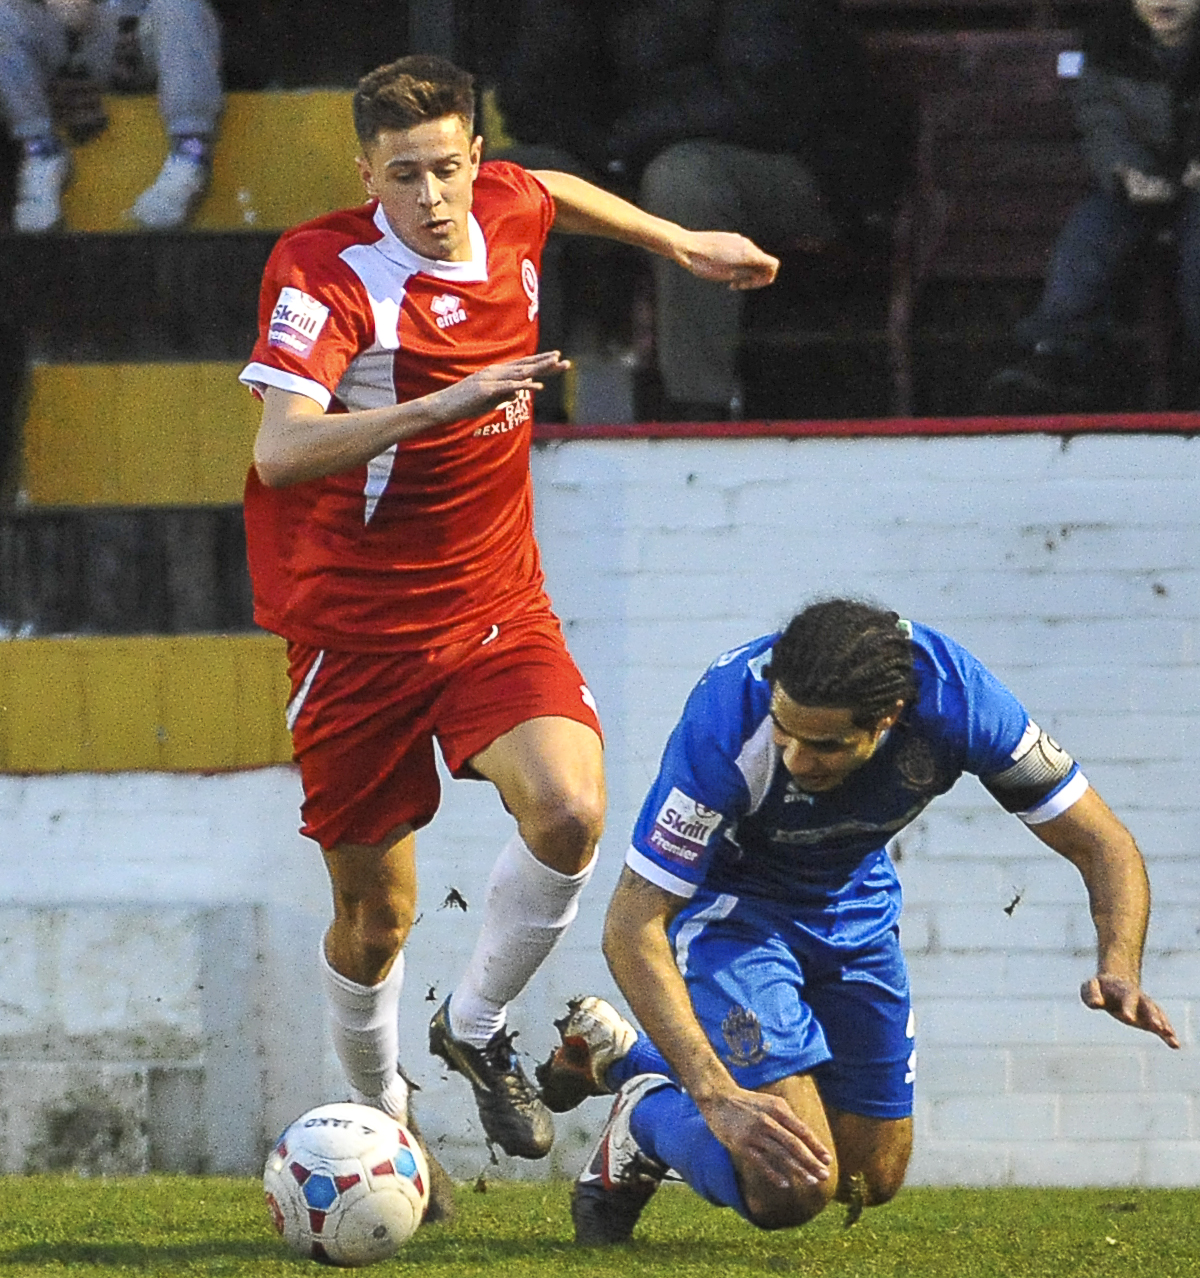 News Shopper: Harry Cornick beats Alfreton Town captain Chris Westwood